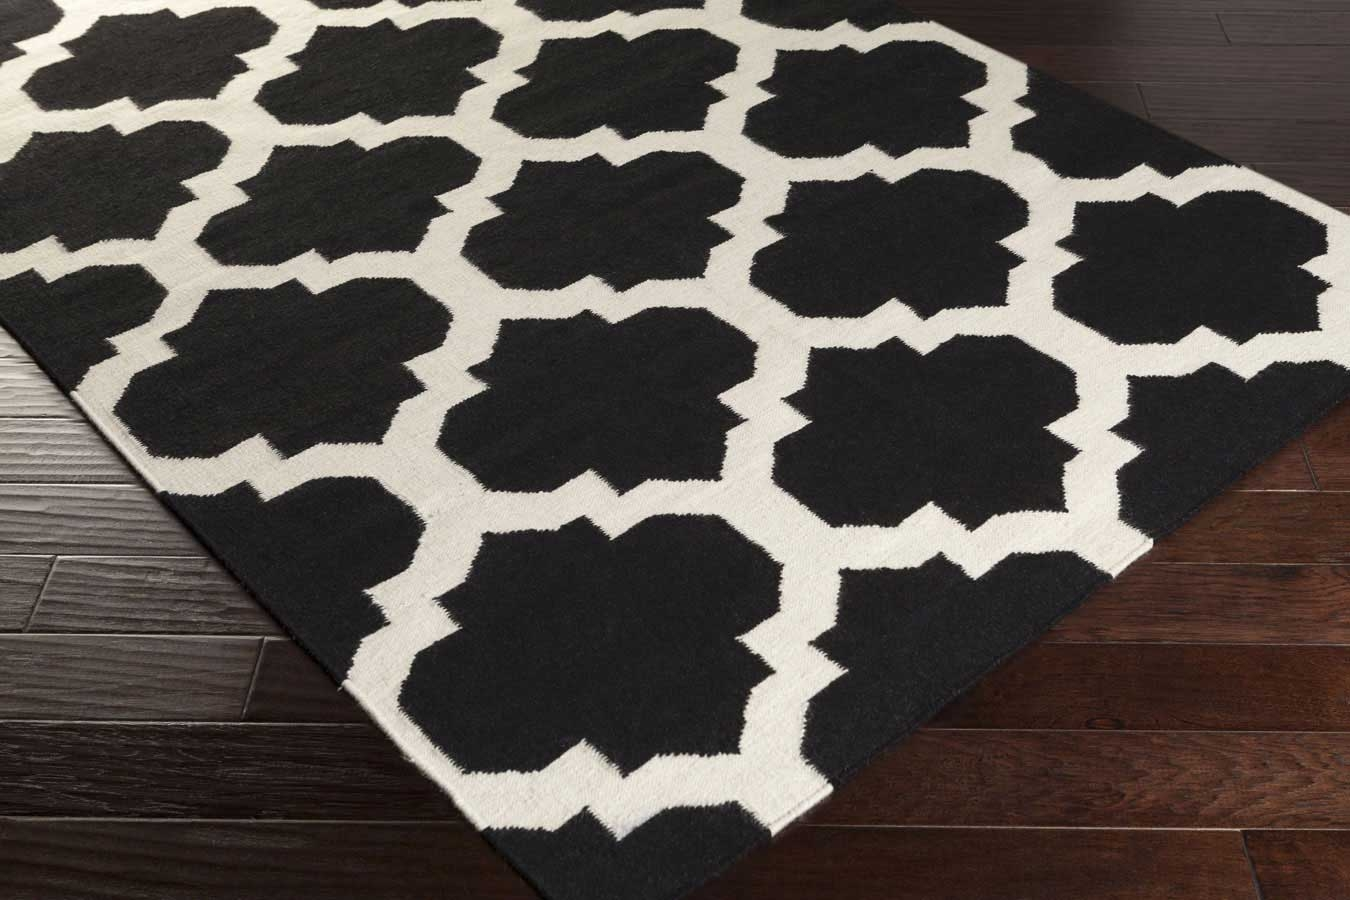 Black and white area rugs artistic weavers york harlow awhd1028 black/white area rug JGHYSDA